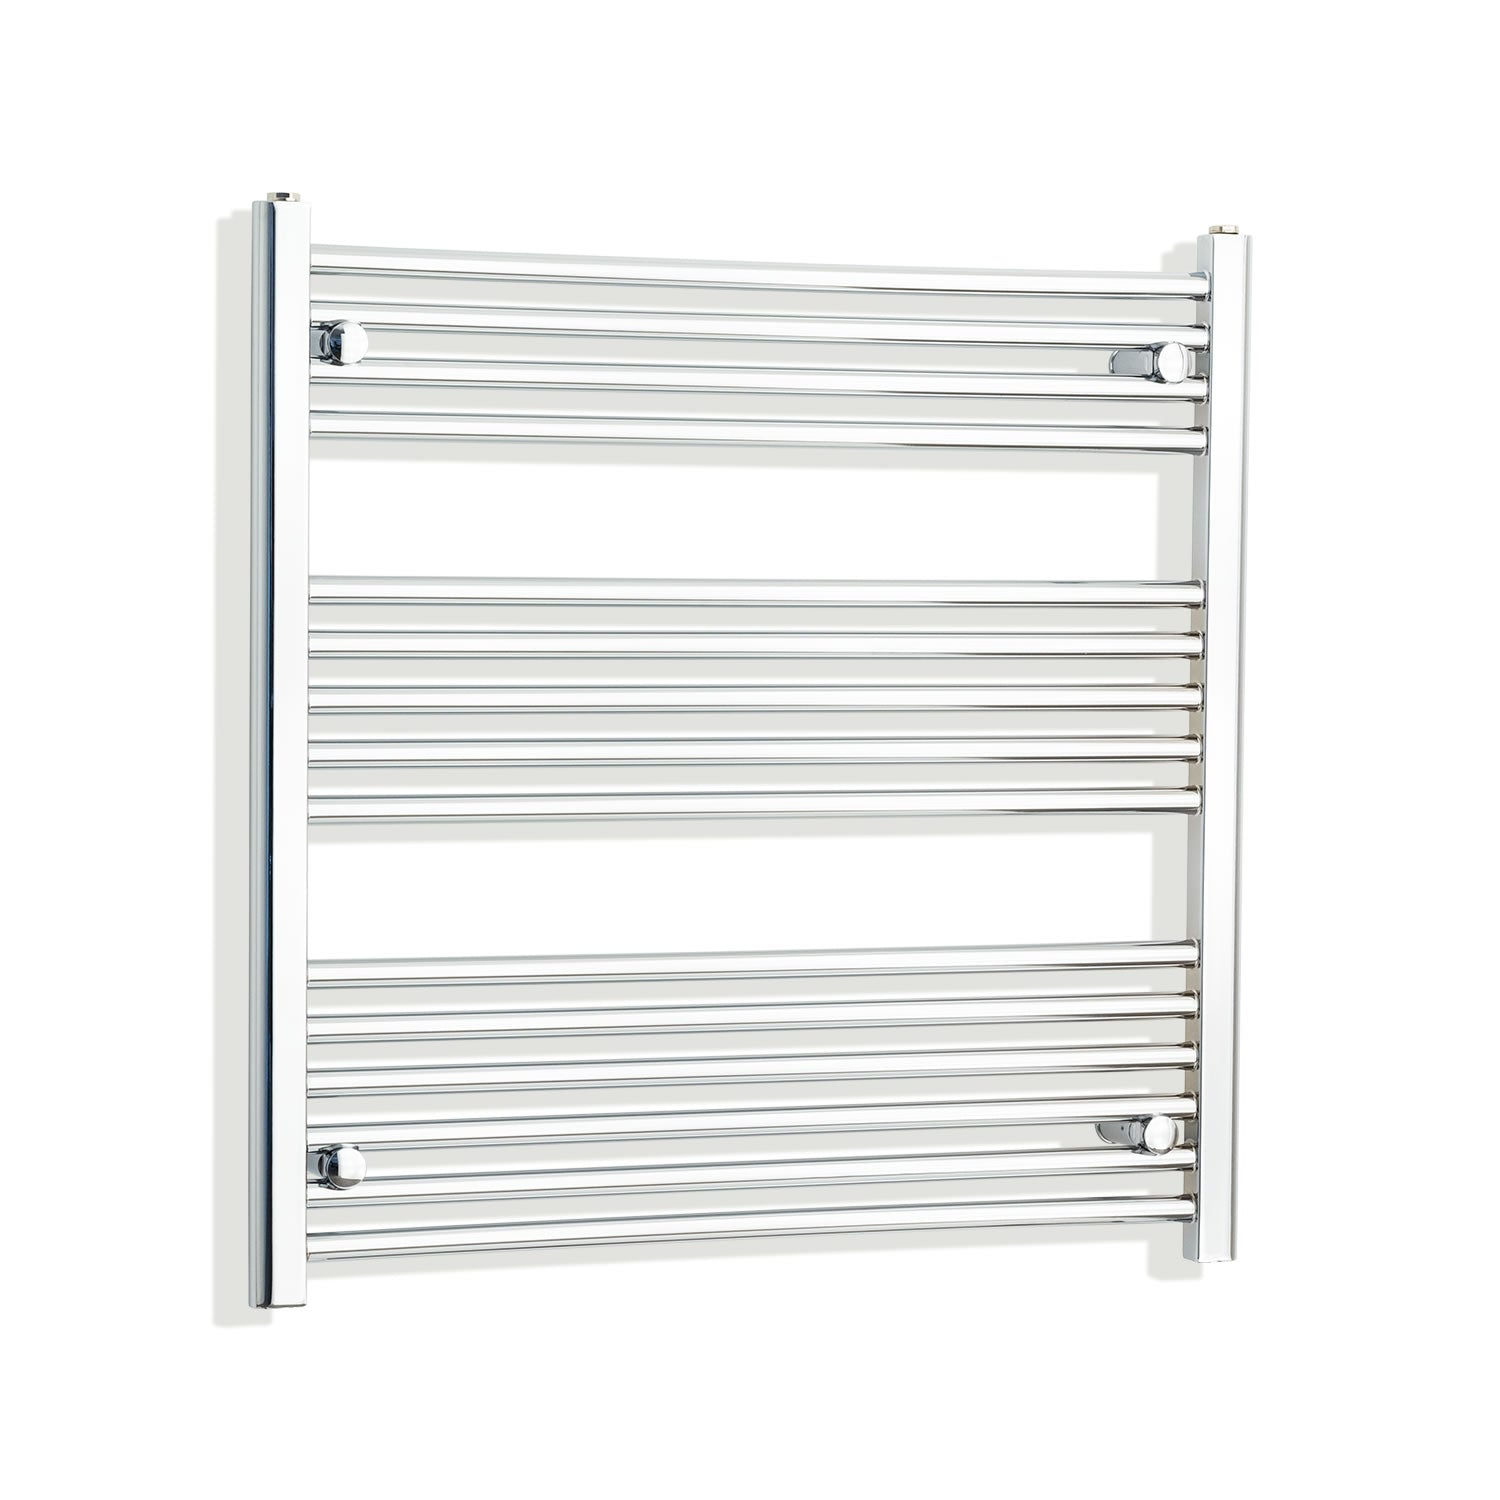 750mm Wide 800mm High Chrome Towel Rail Radiator